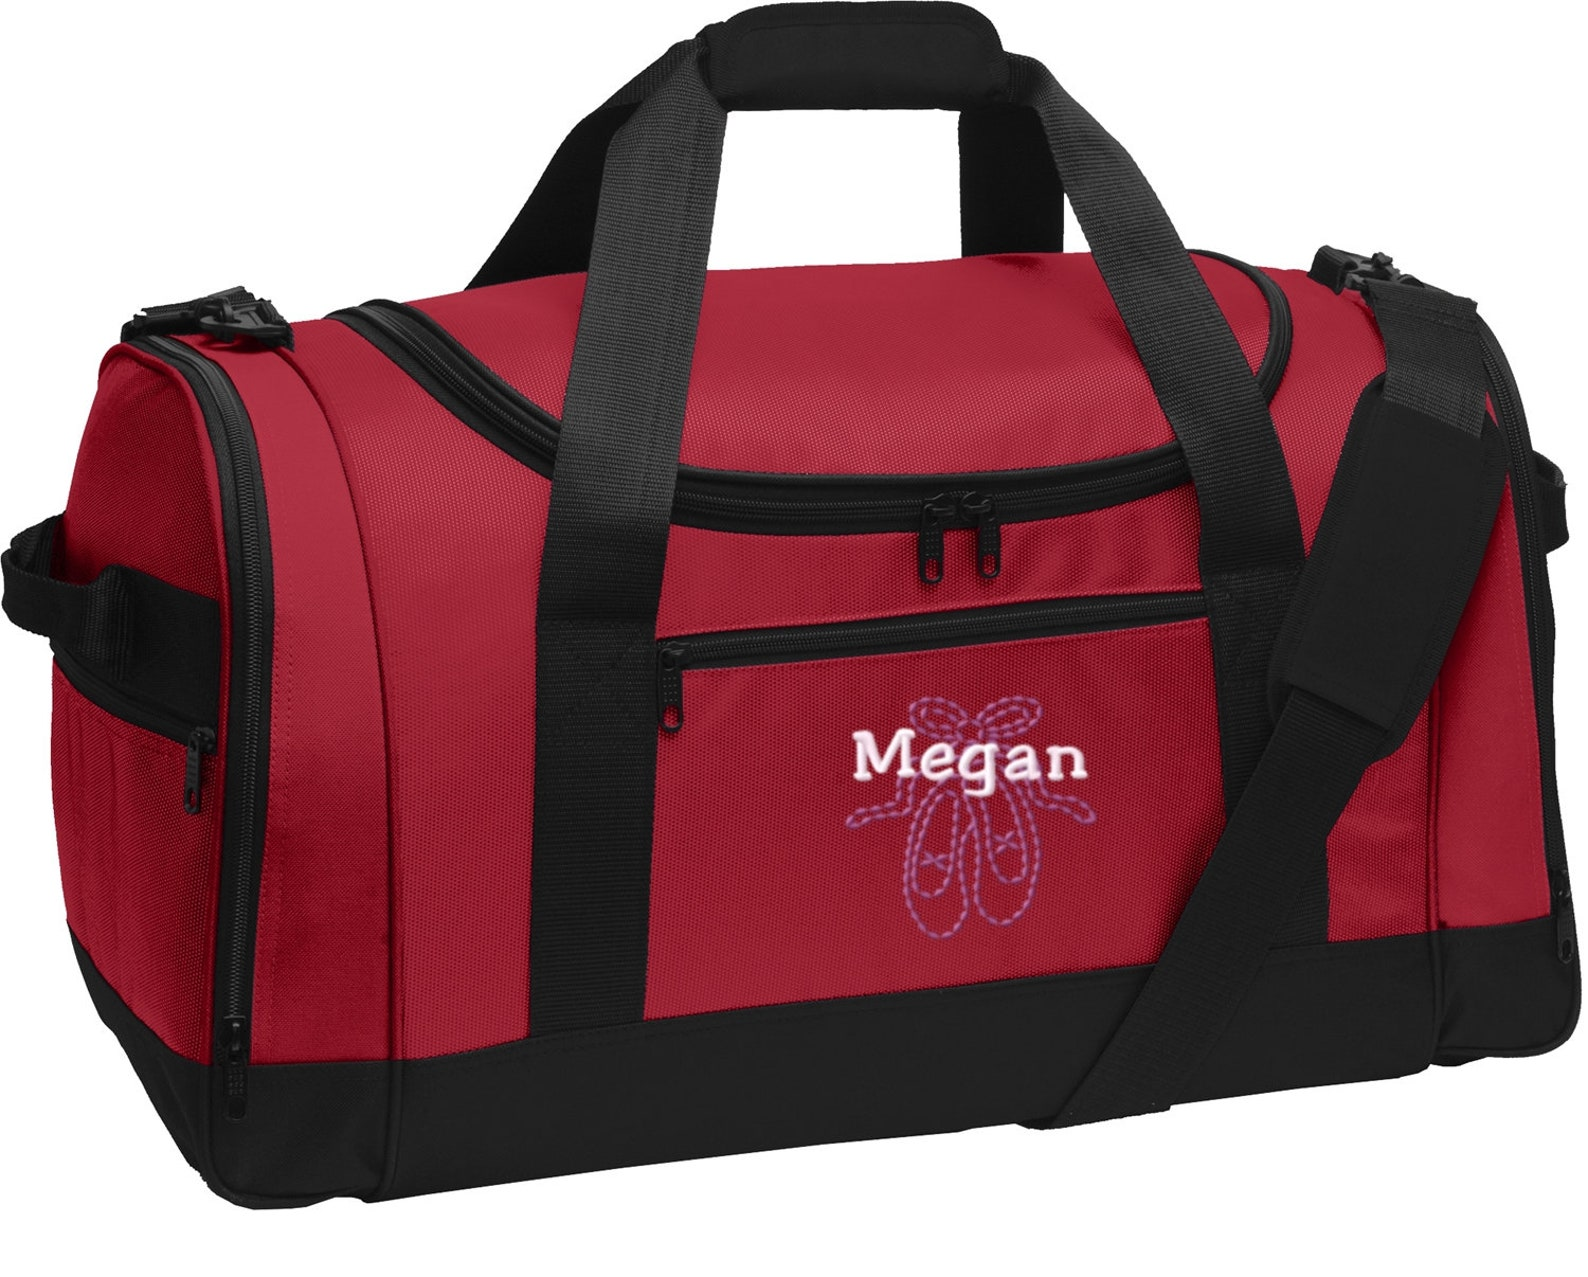 personalized ballet shoes voyager sports duffel bag with free personalization & free shipping bg800